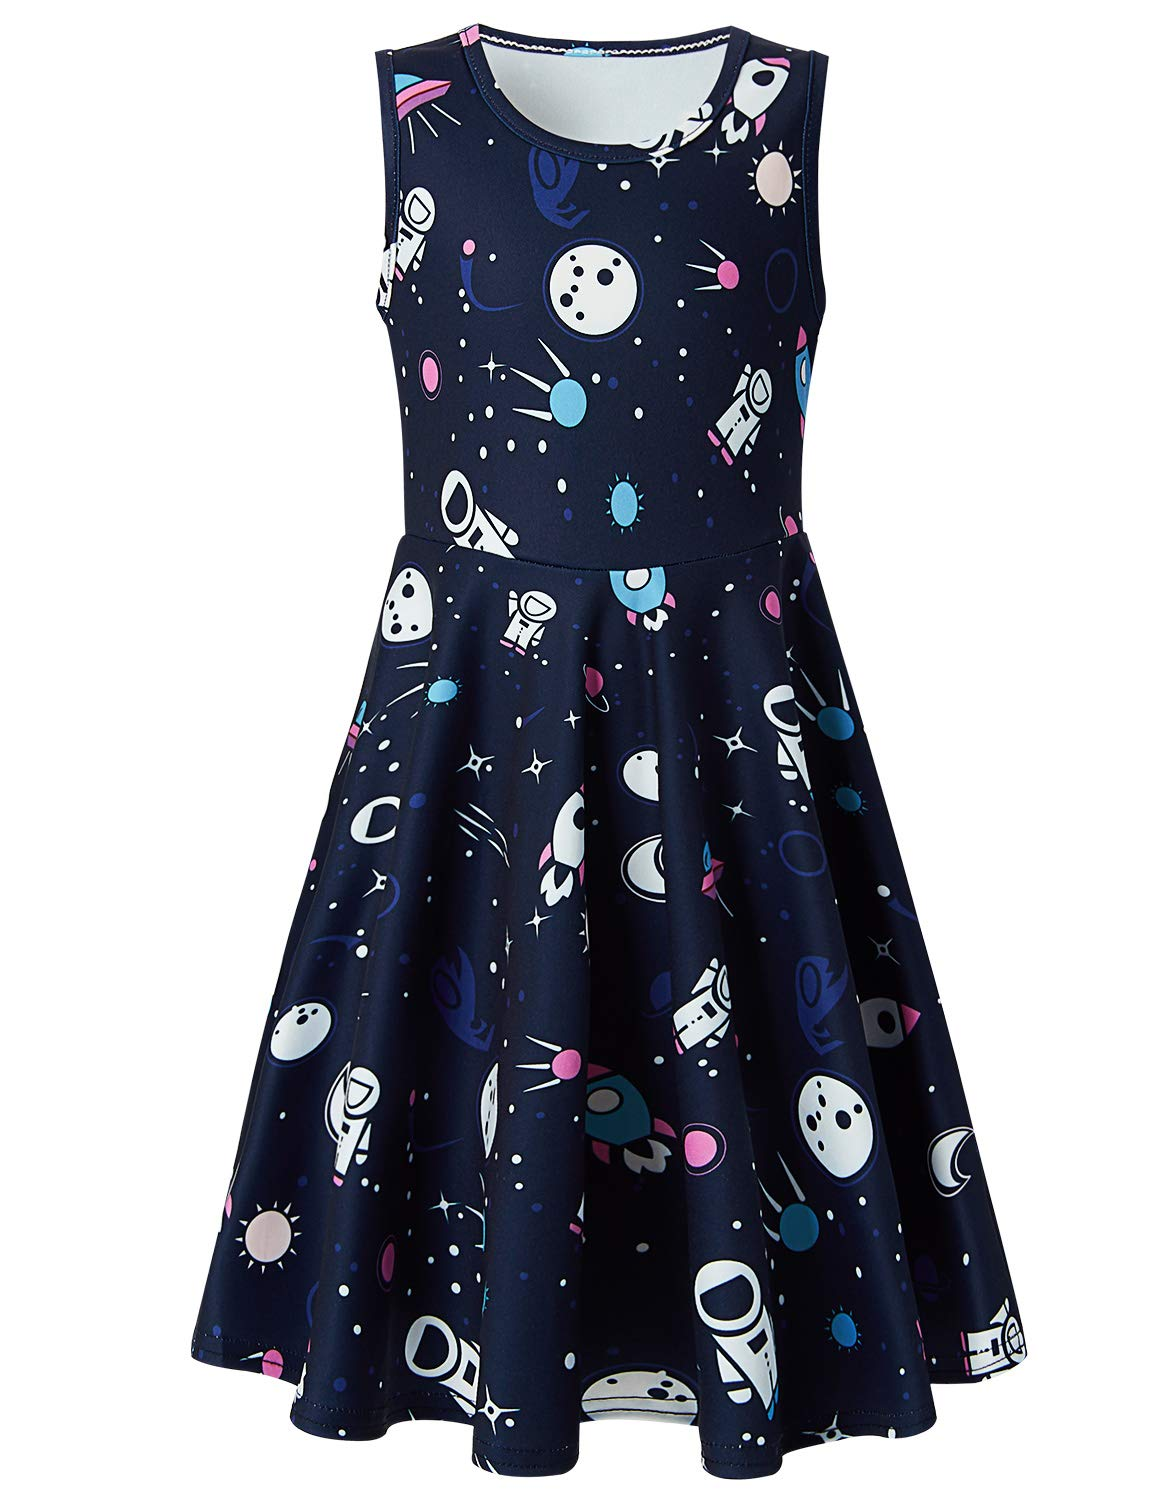 Leapparel Girls Floral Sleeveless Summer Round Neck Dress for Casual/Party/Wedding 4-13 Years xzq20180608